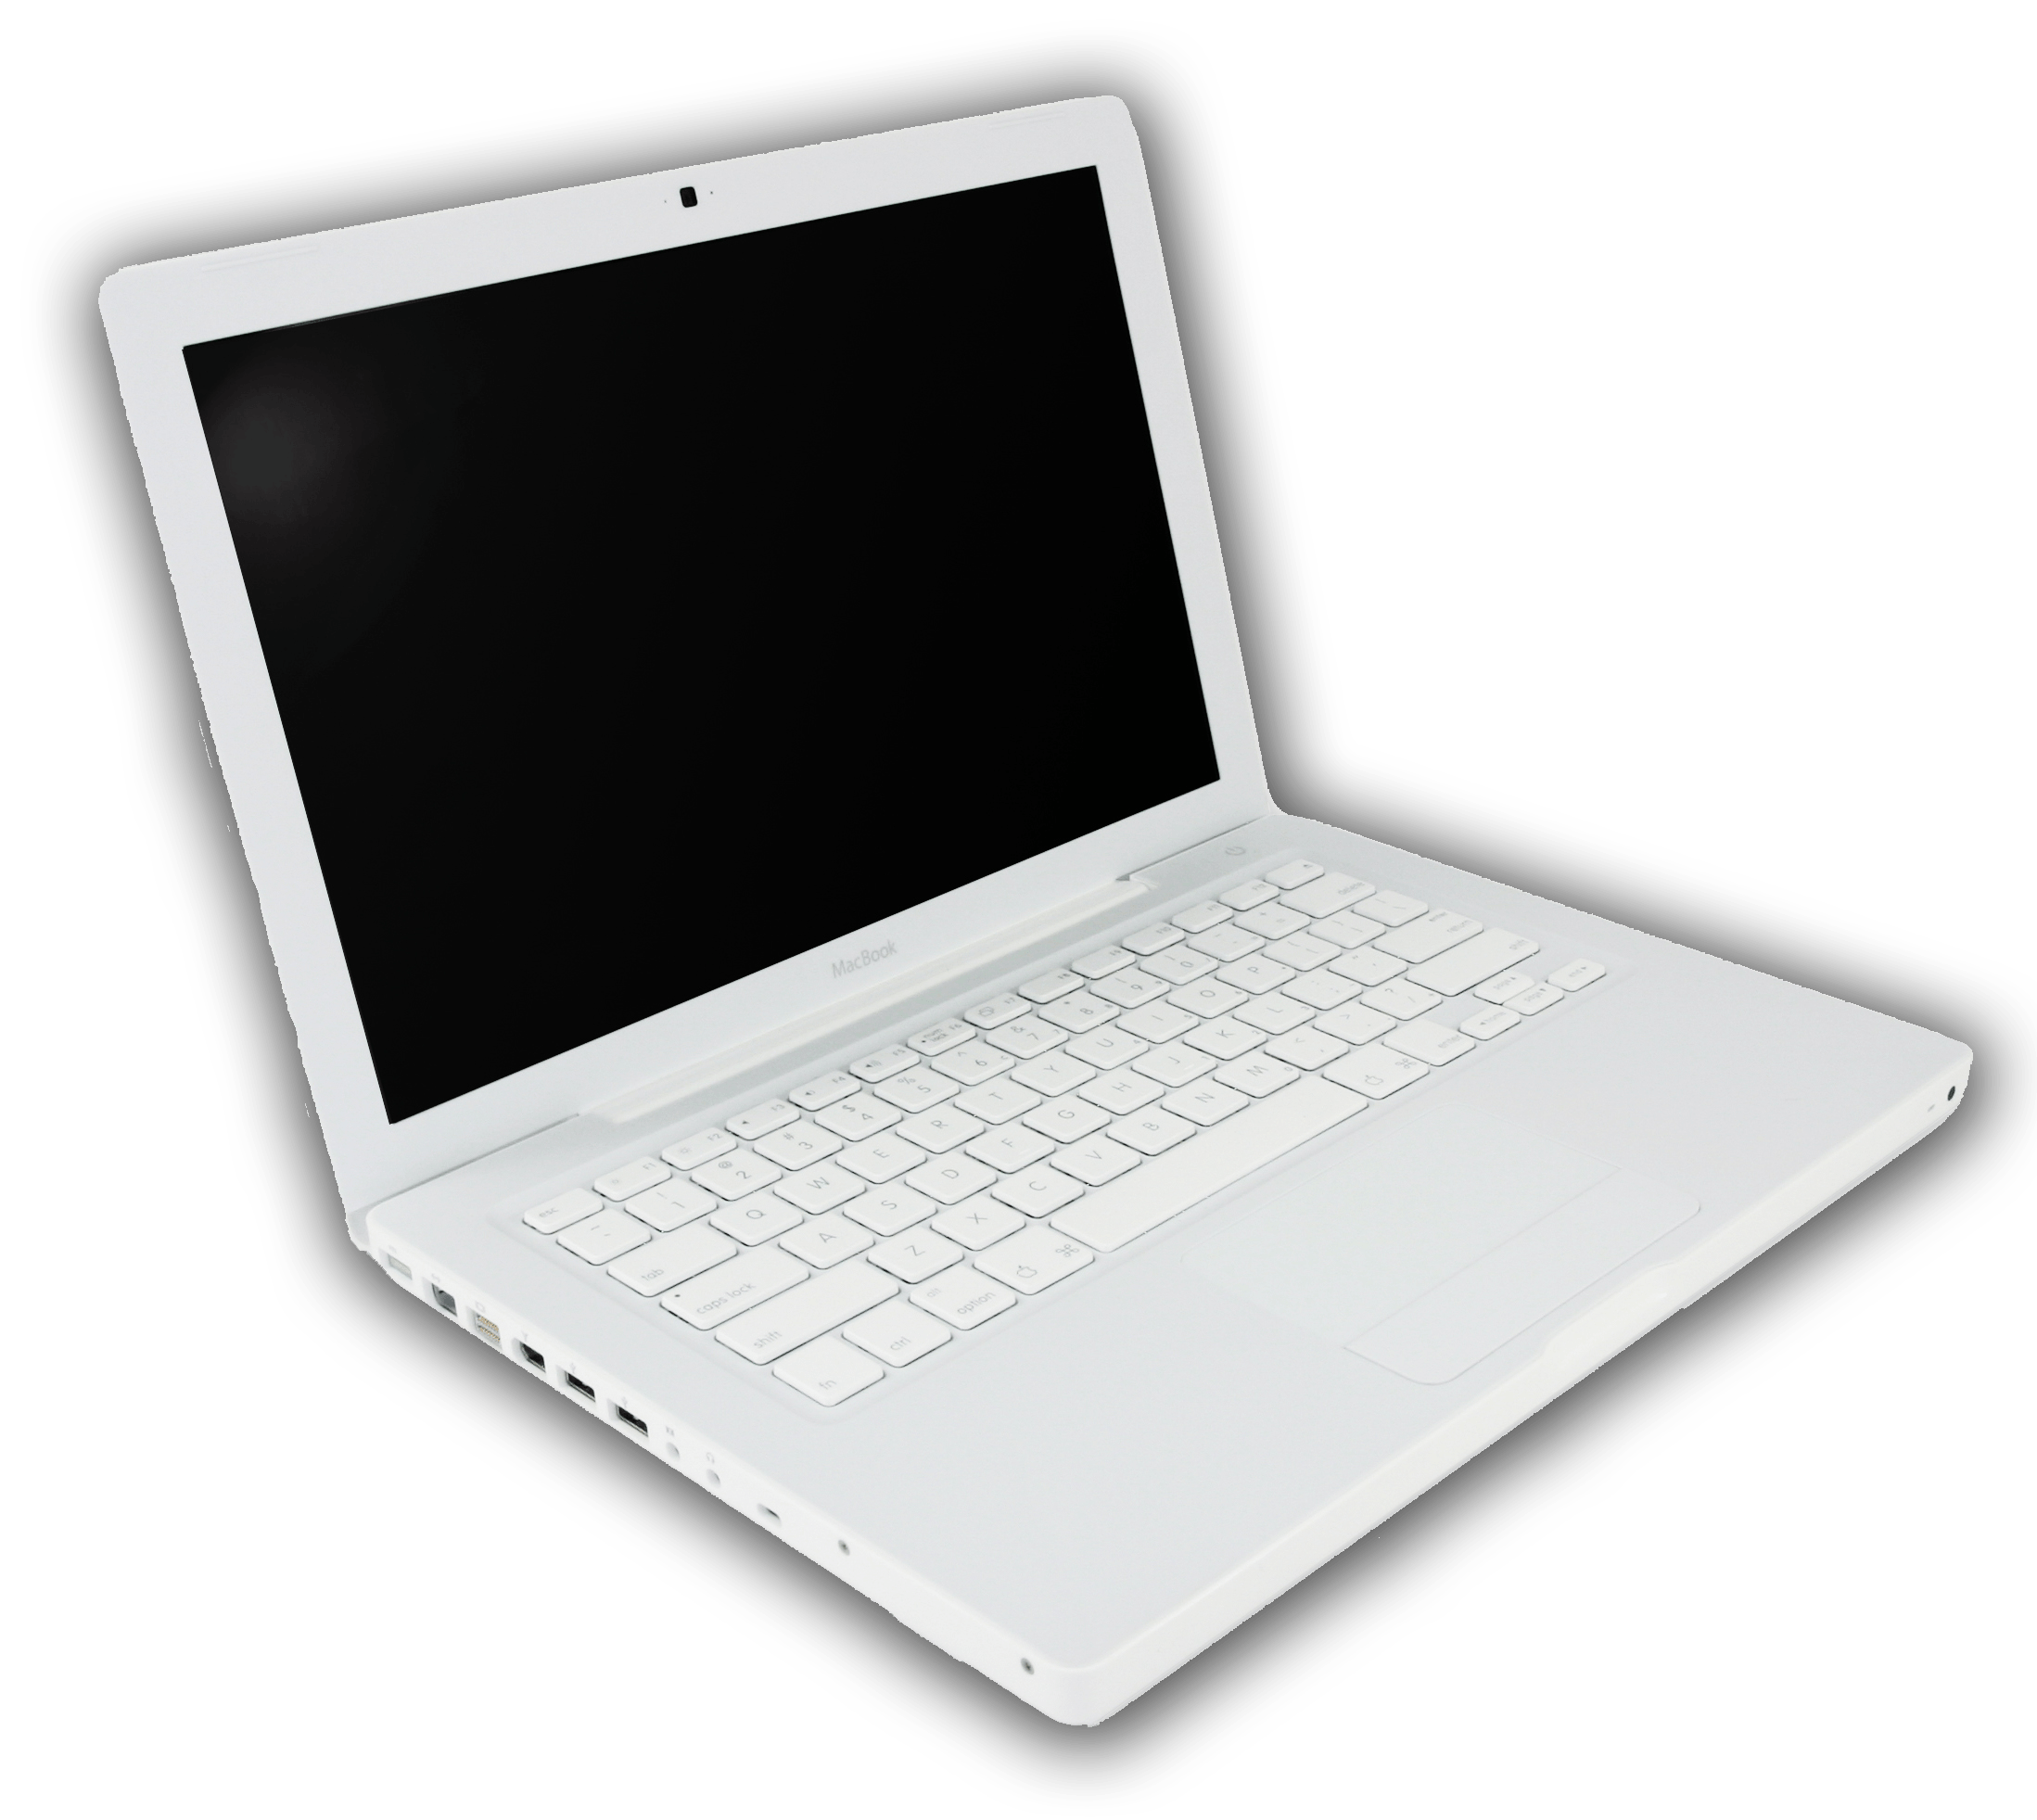 File:MacBook white.png - Wikimedia Commons